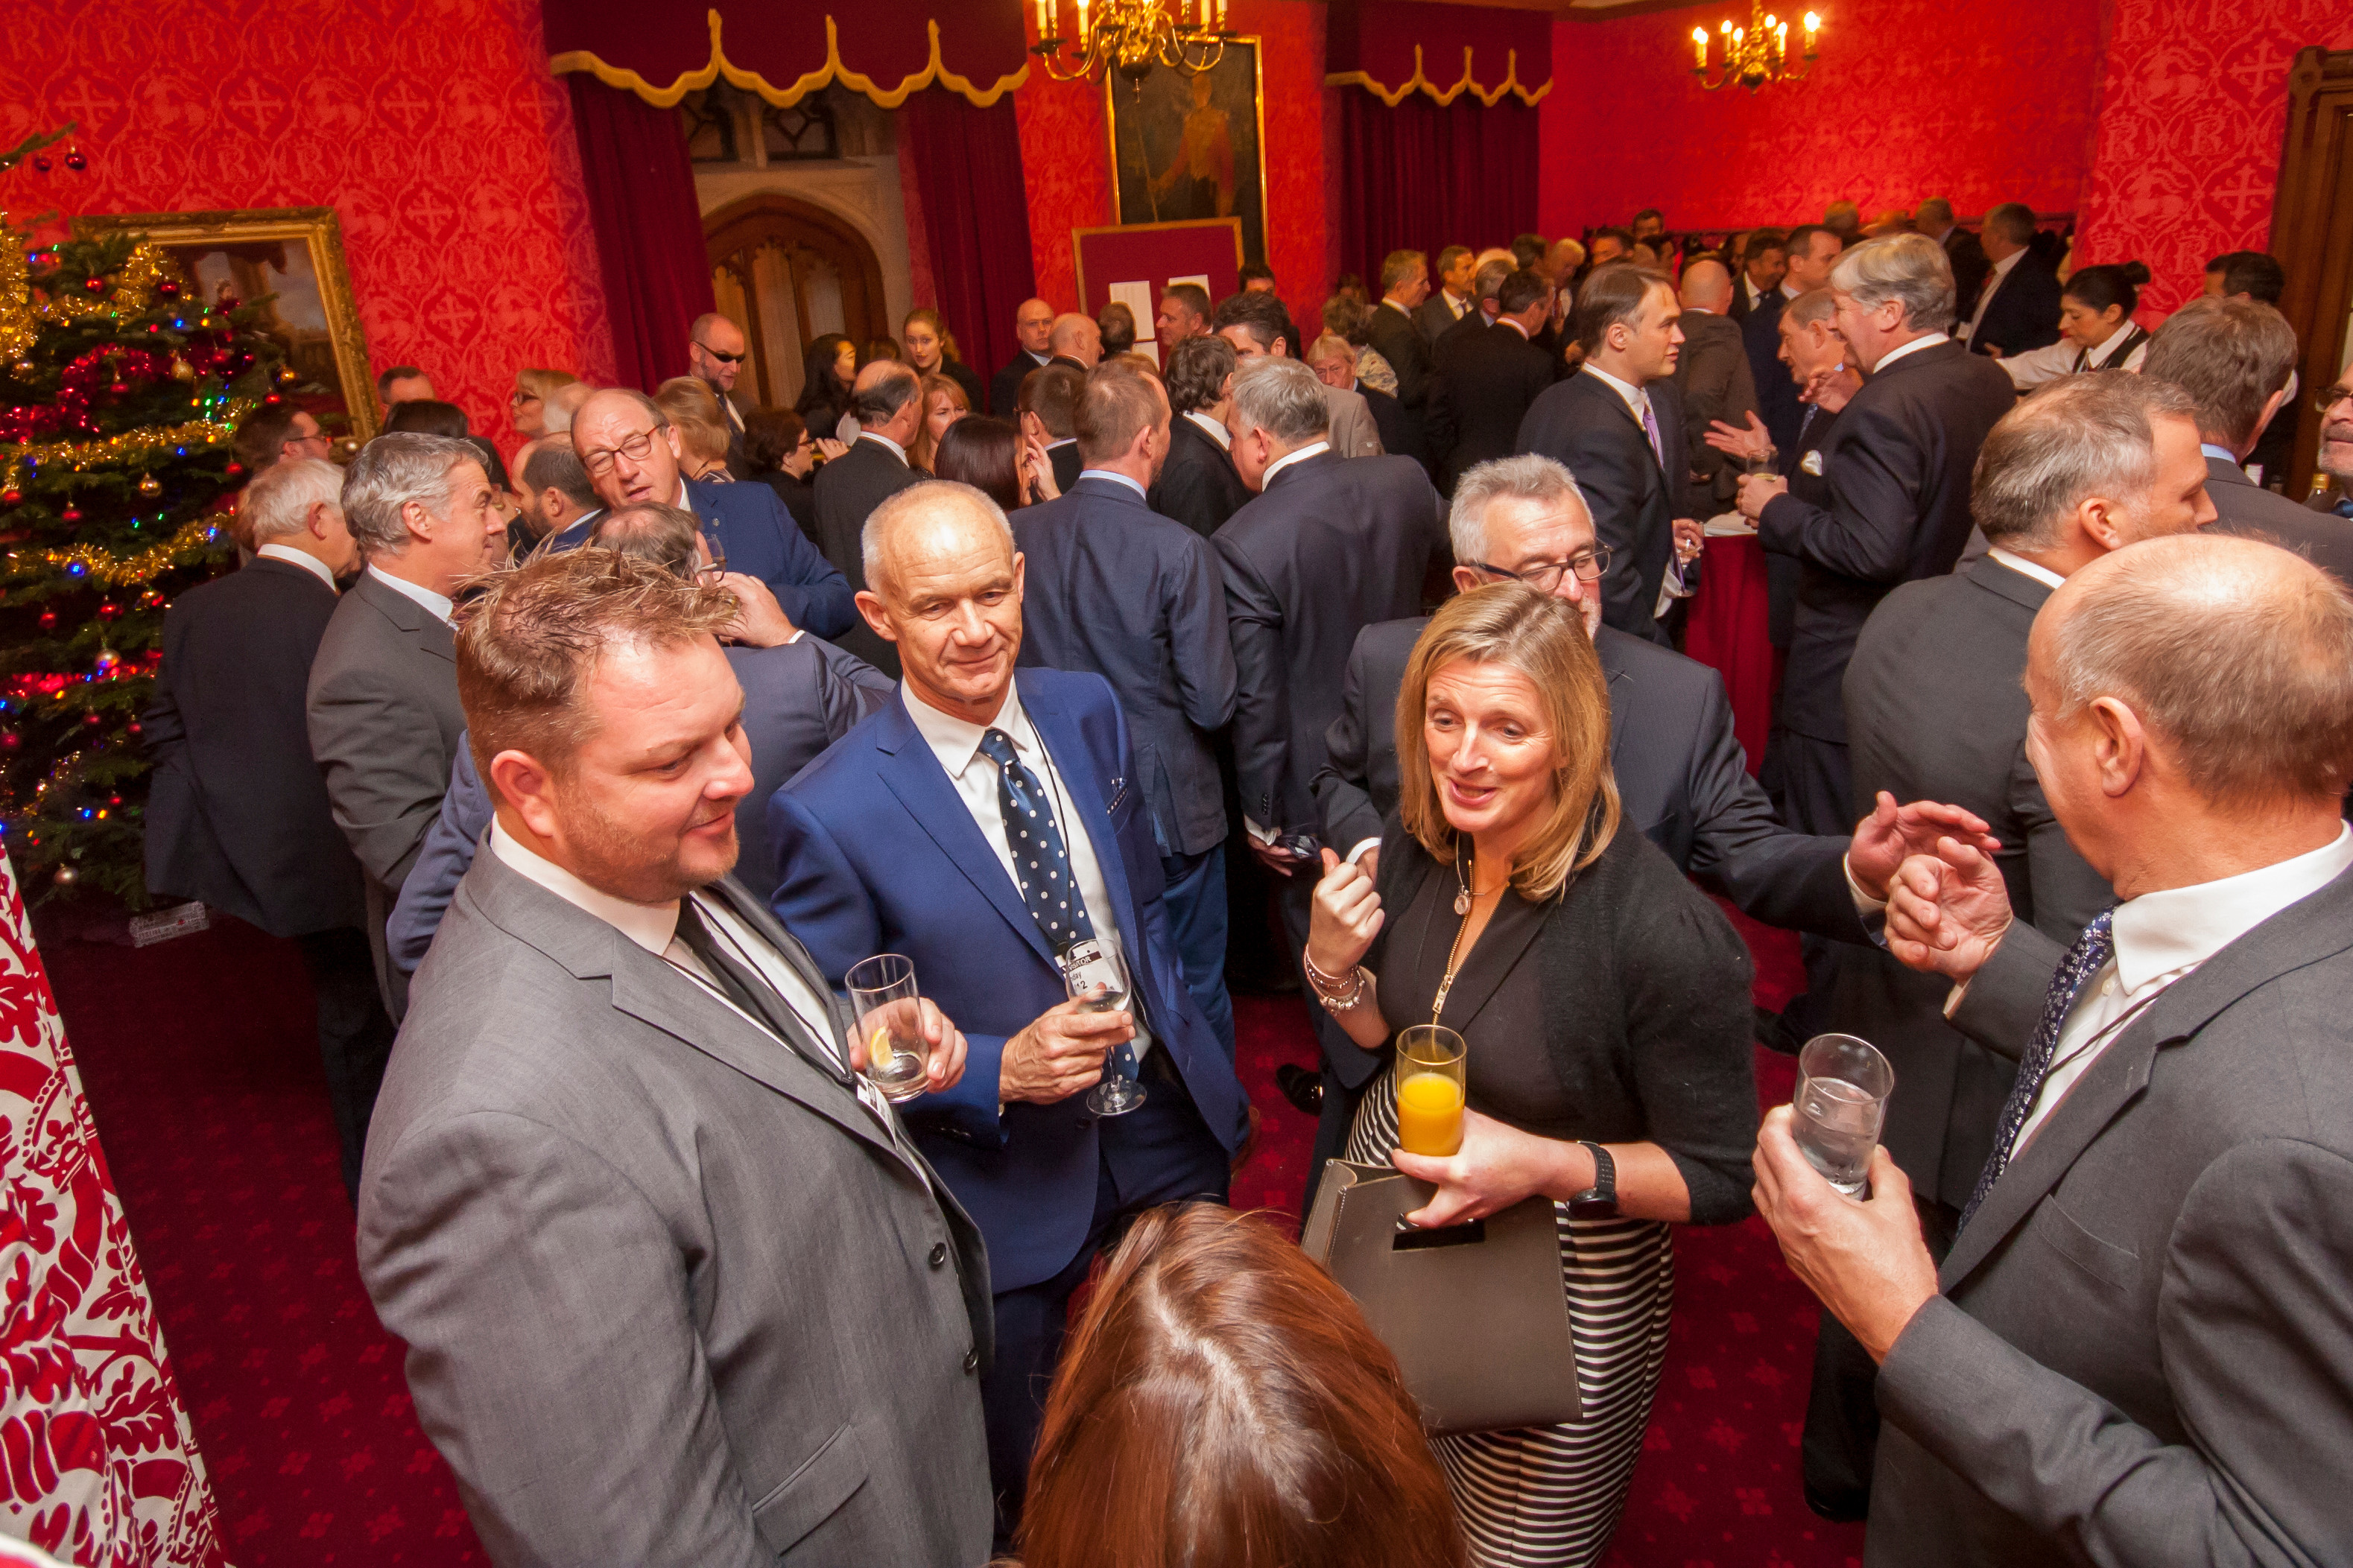 APPG for Rowing Annual Dinner